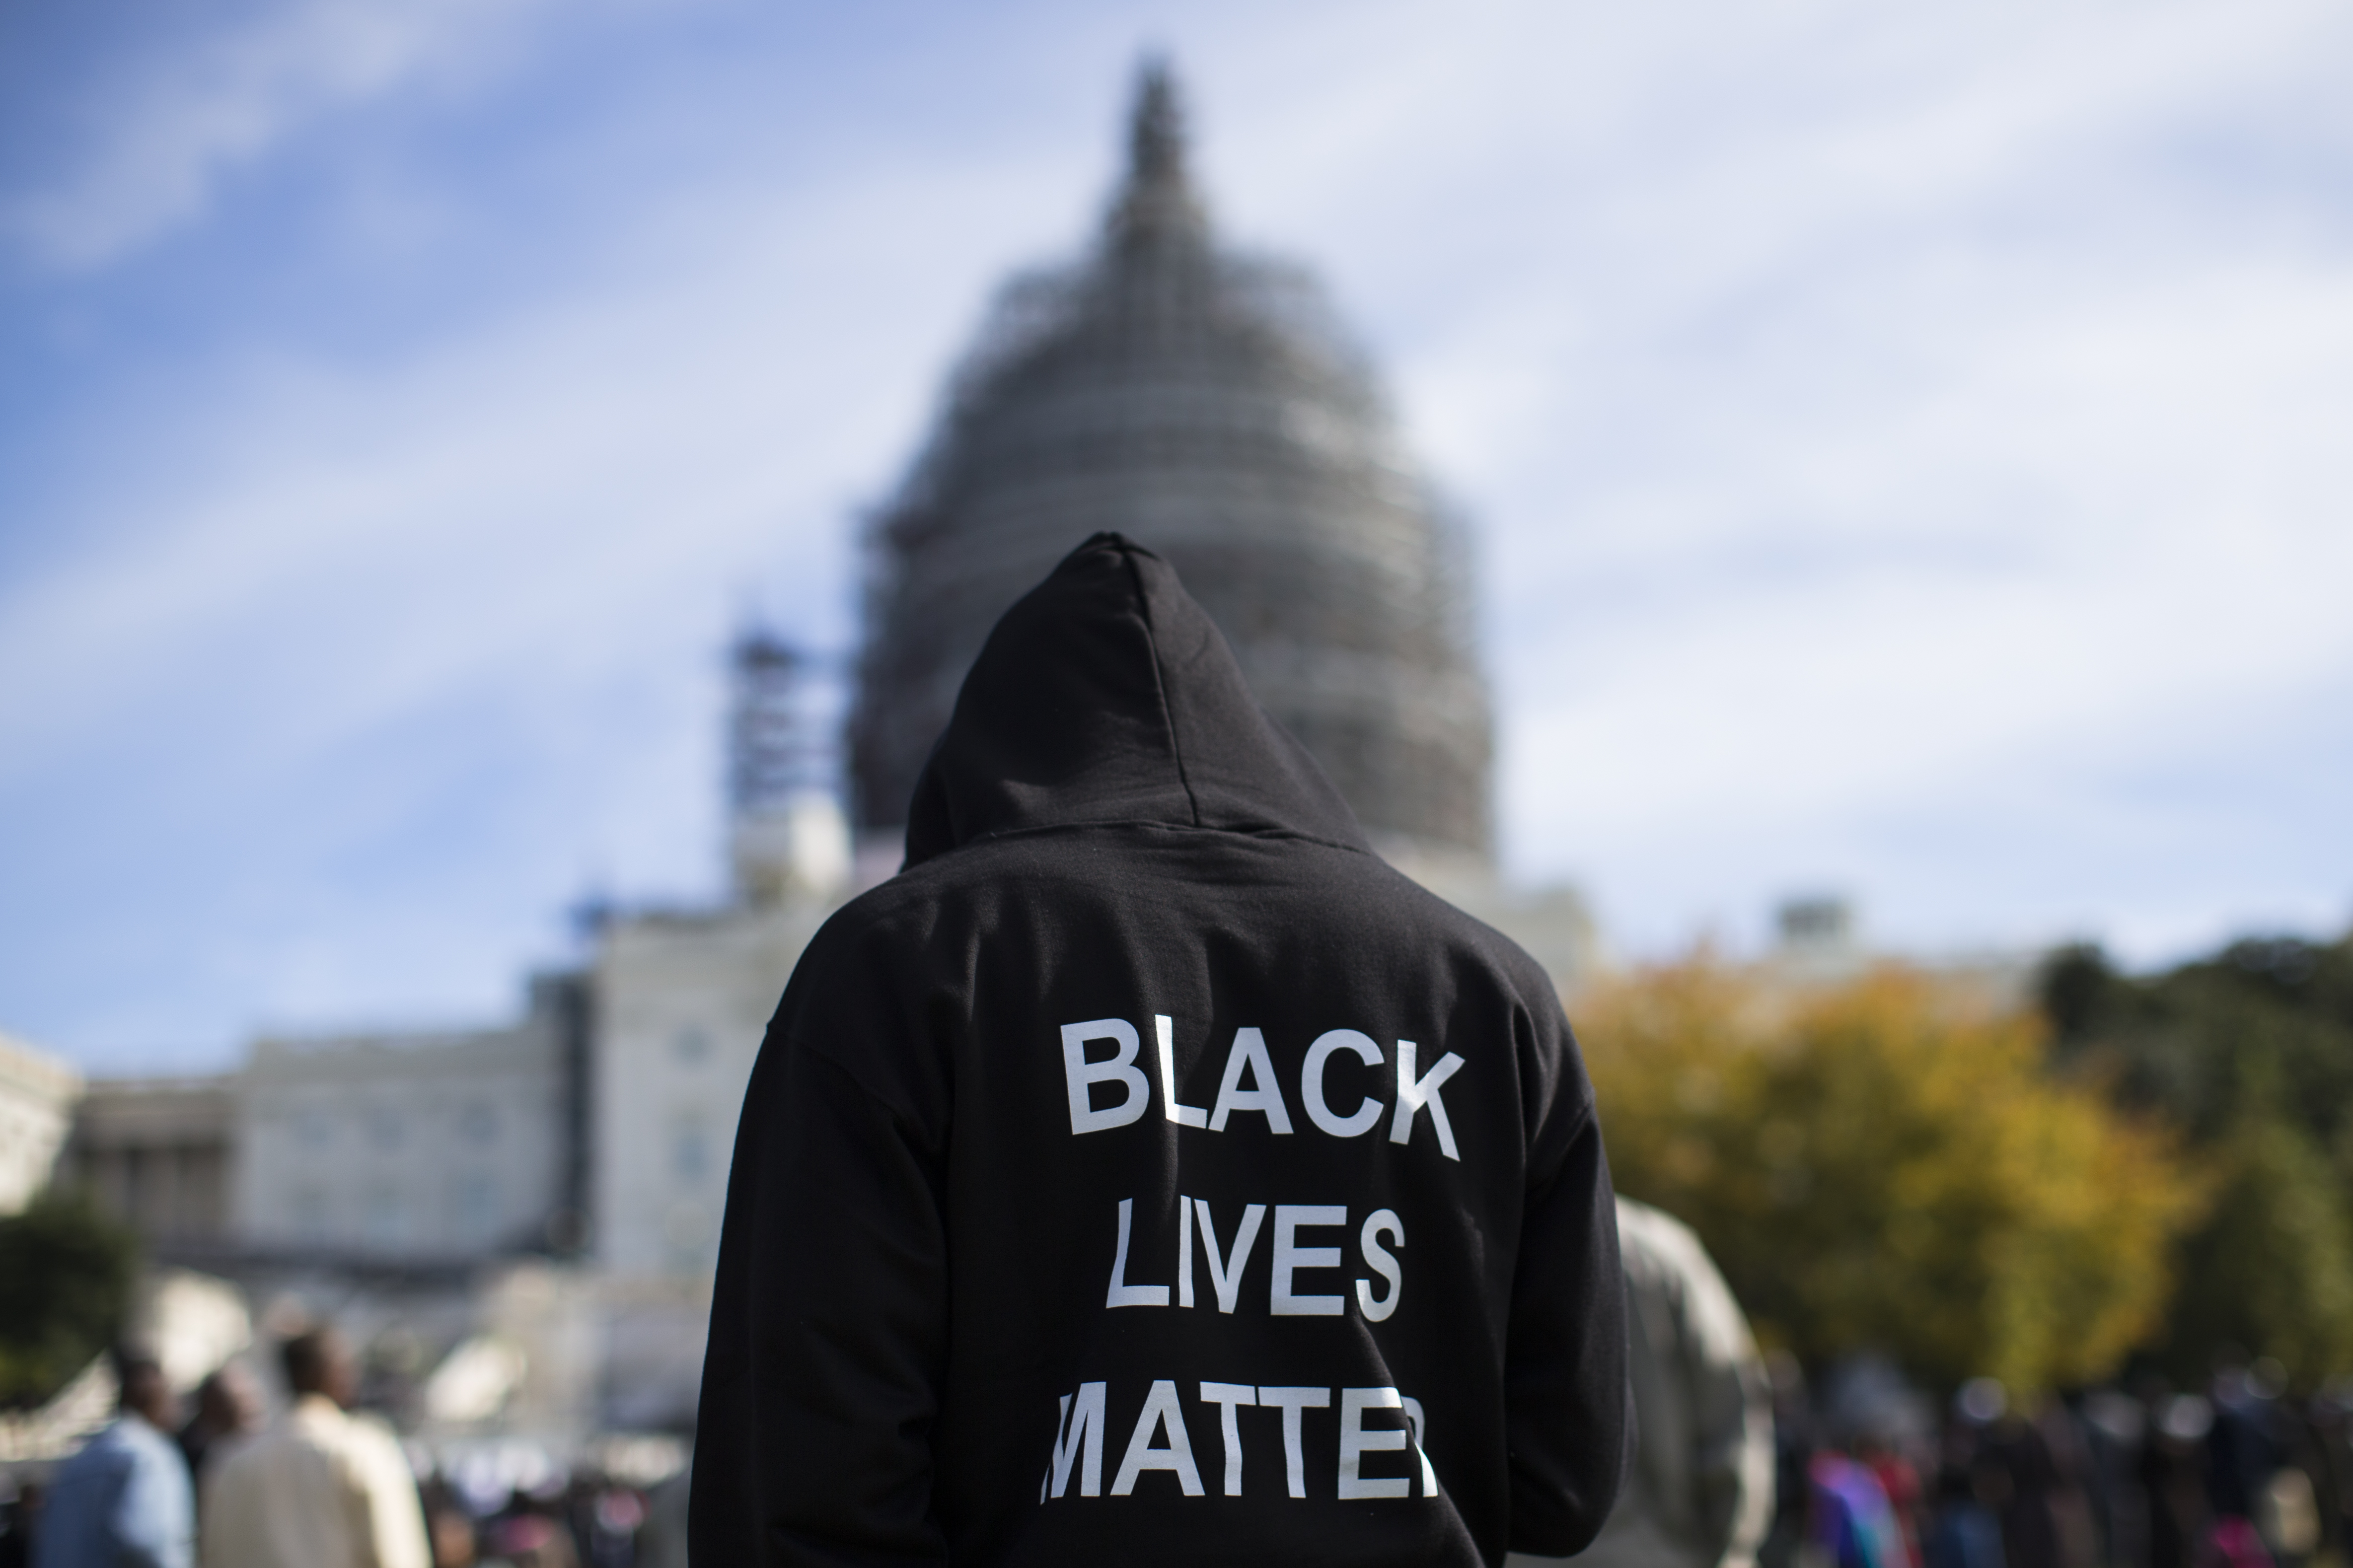 Neal Blair, of Augusta, Ga. stands on the lawn of the Capitol building during a rally to mark the 20th anniversary of the Million Man March, on Capitol Hill, on Oct. 10, 2015, in Washington.